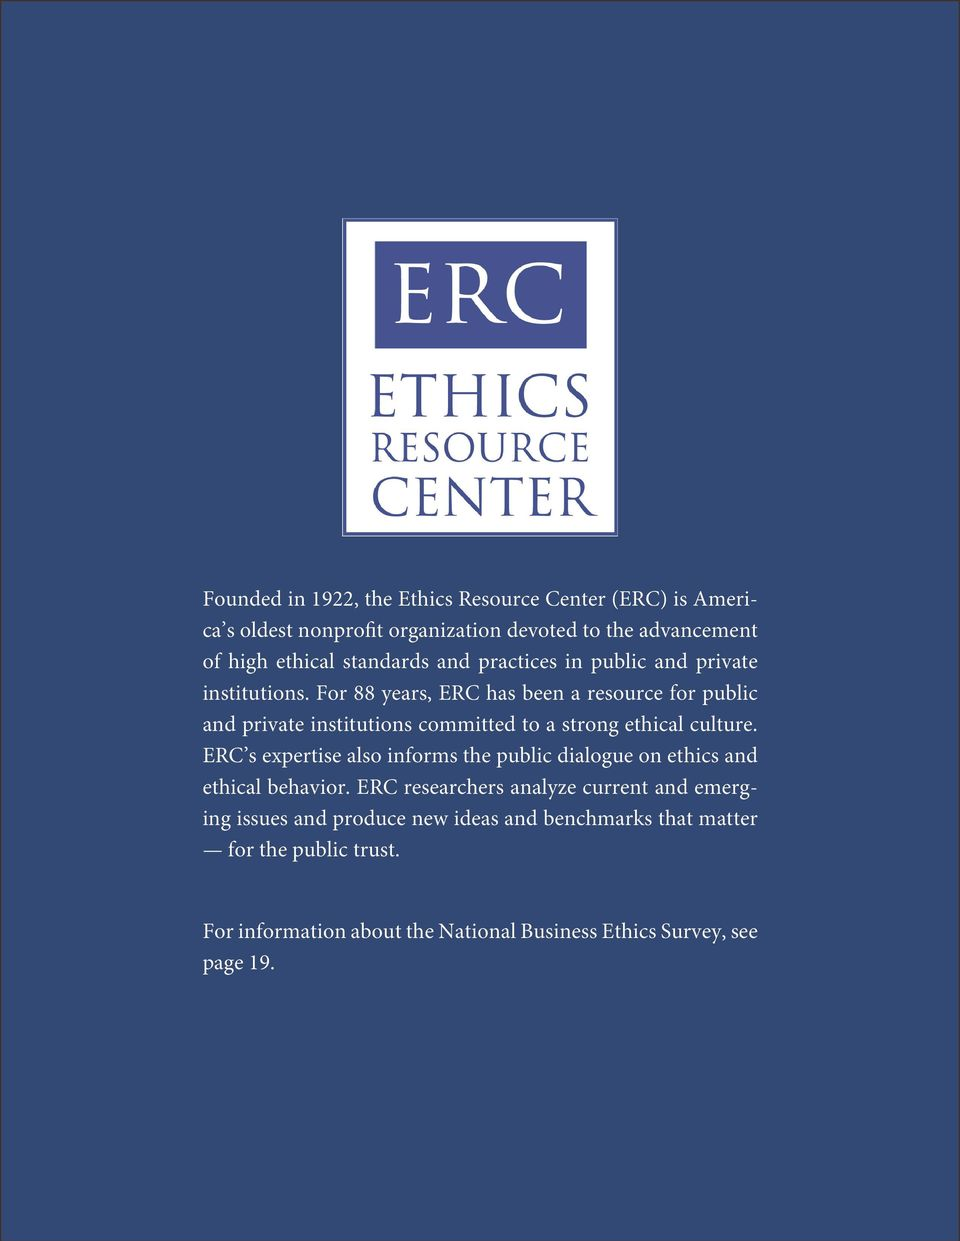 For 88 years, ERC has been a resource for public and private institutions committed to a strong ethical culture.